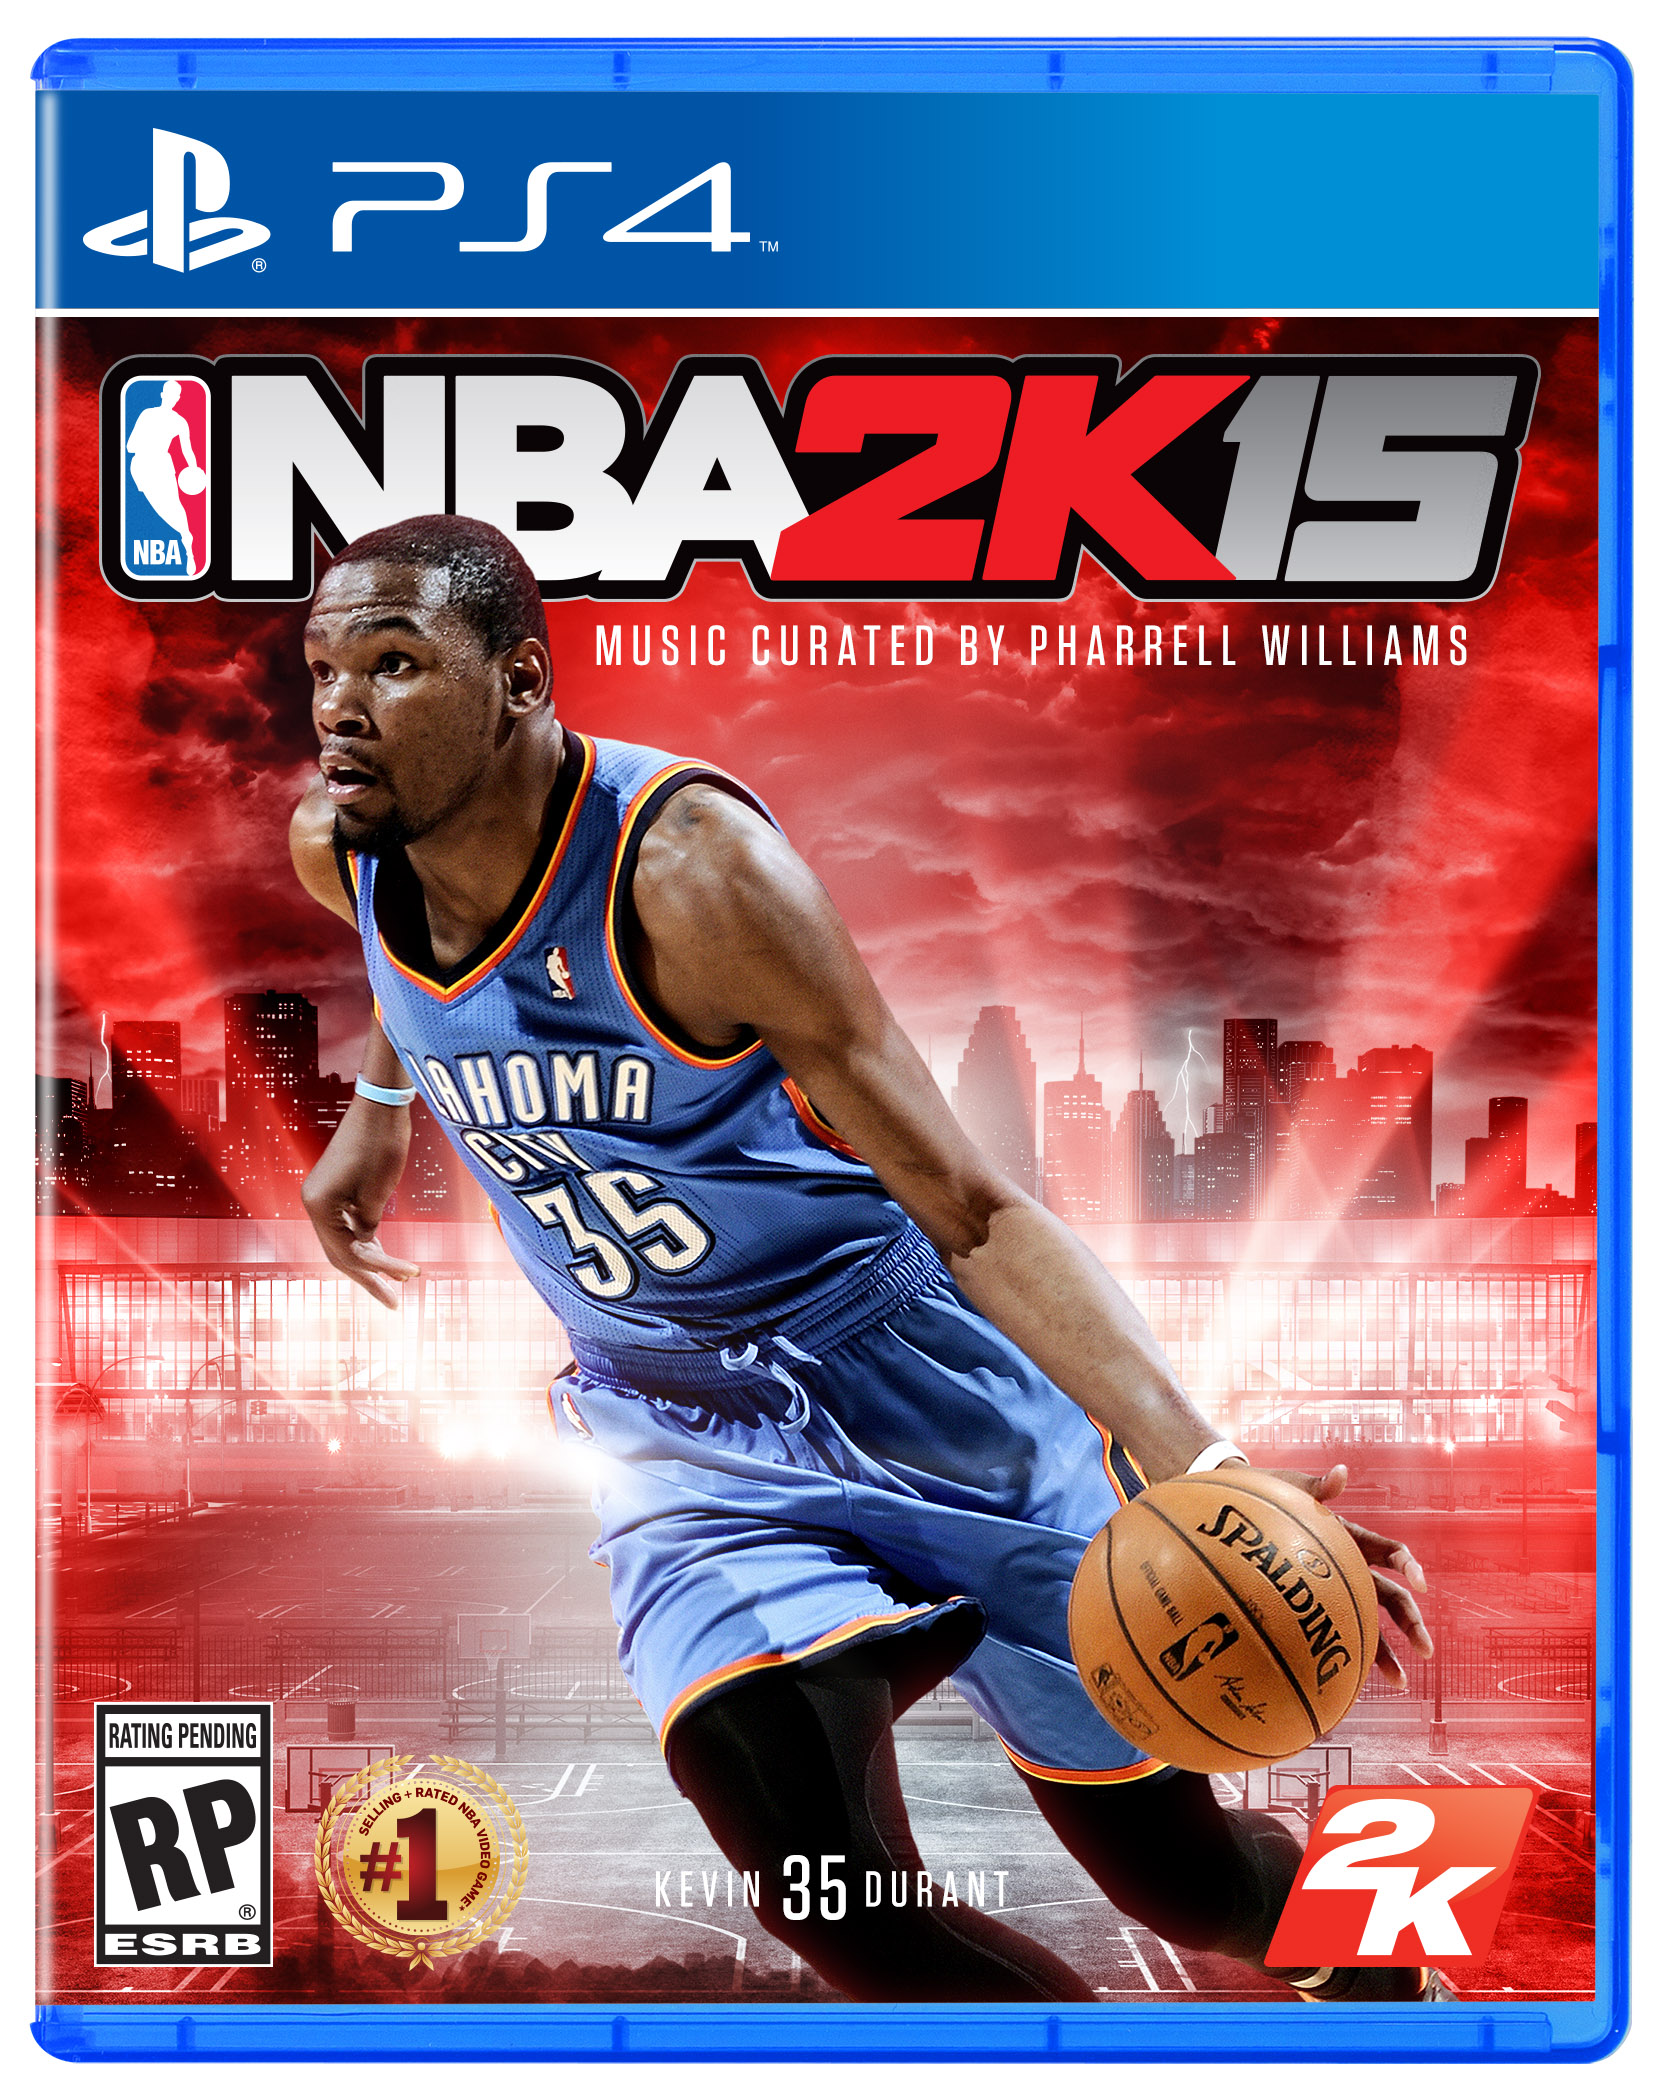 NBA 2K15 Releases Kevin Durant Cover - Keeping It Real Sports